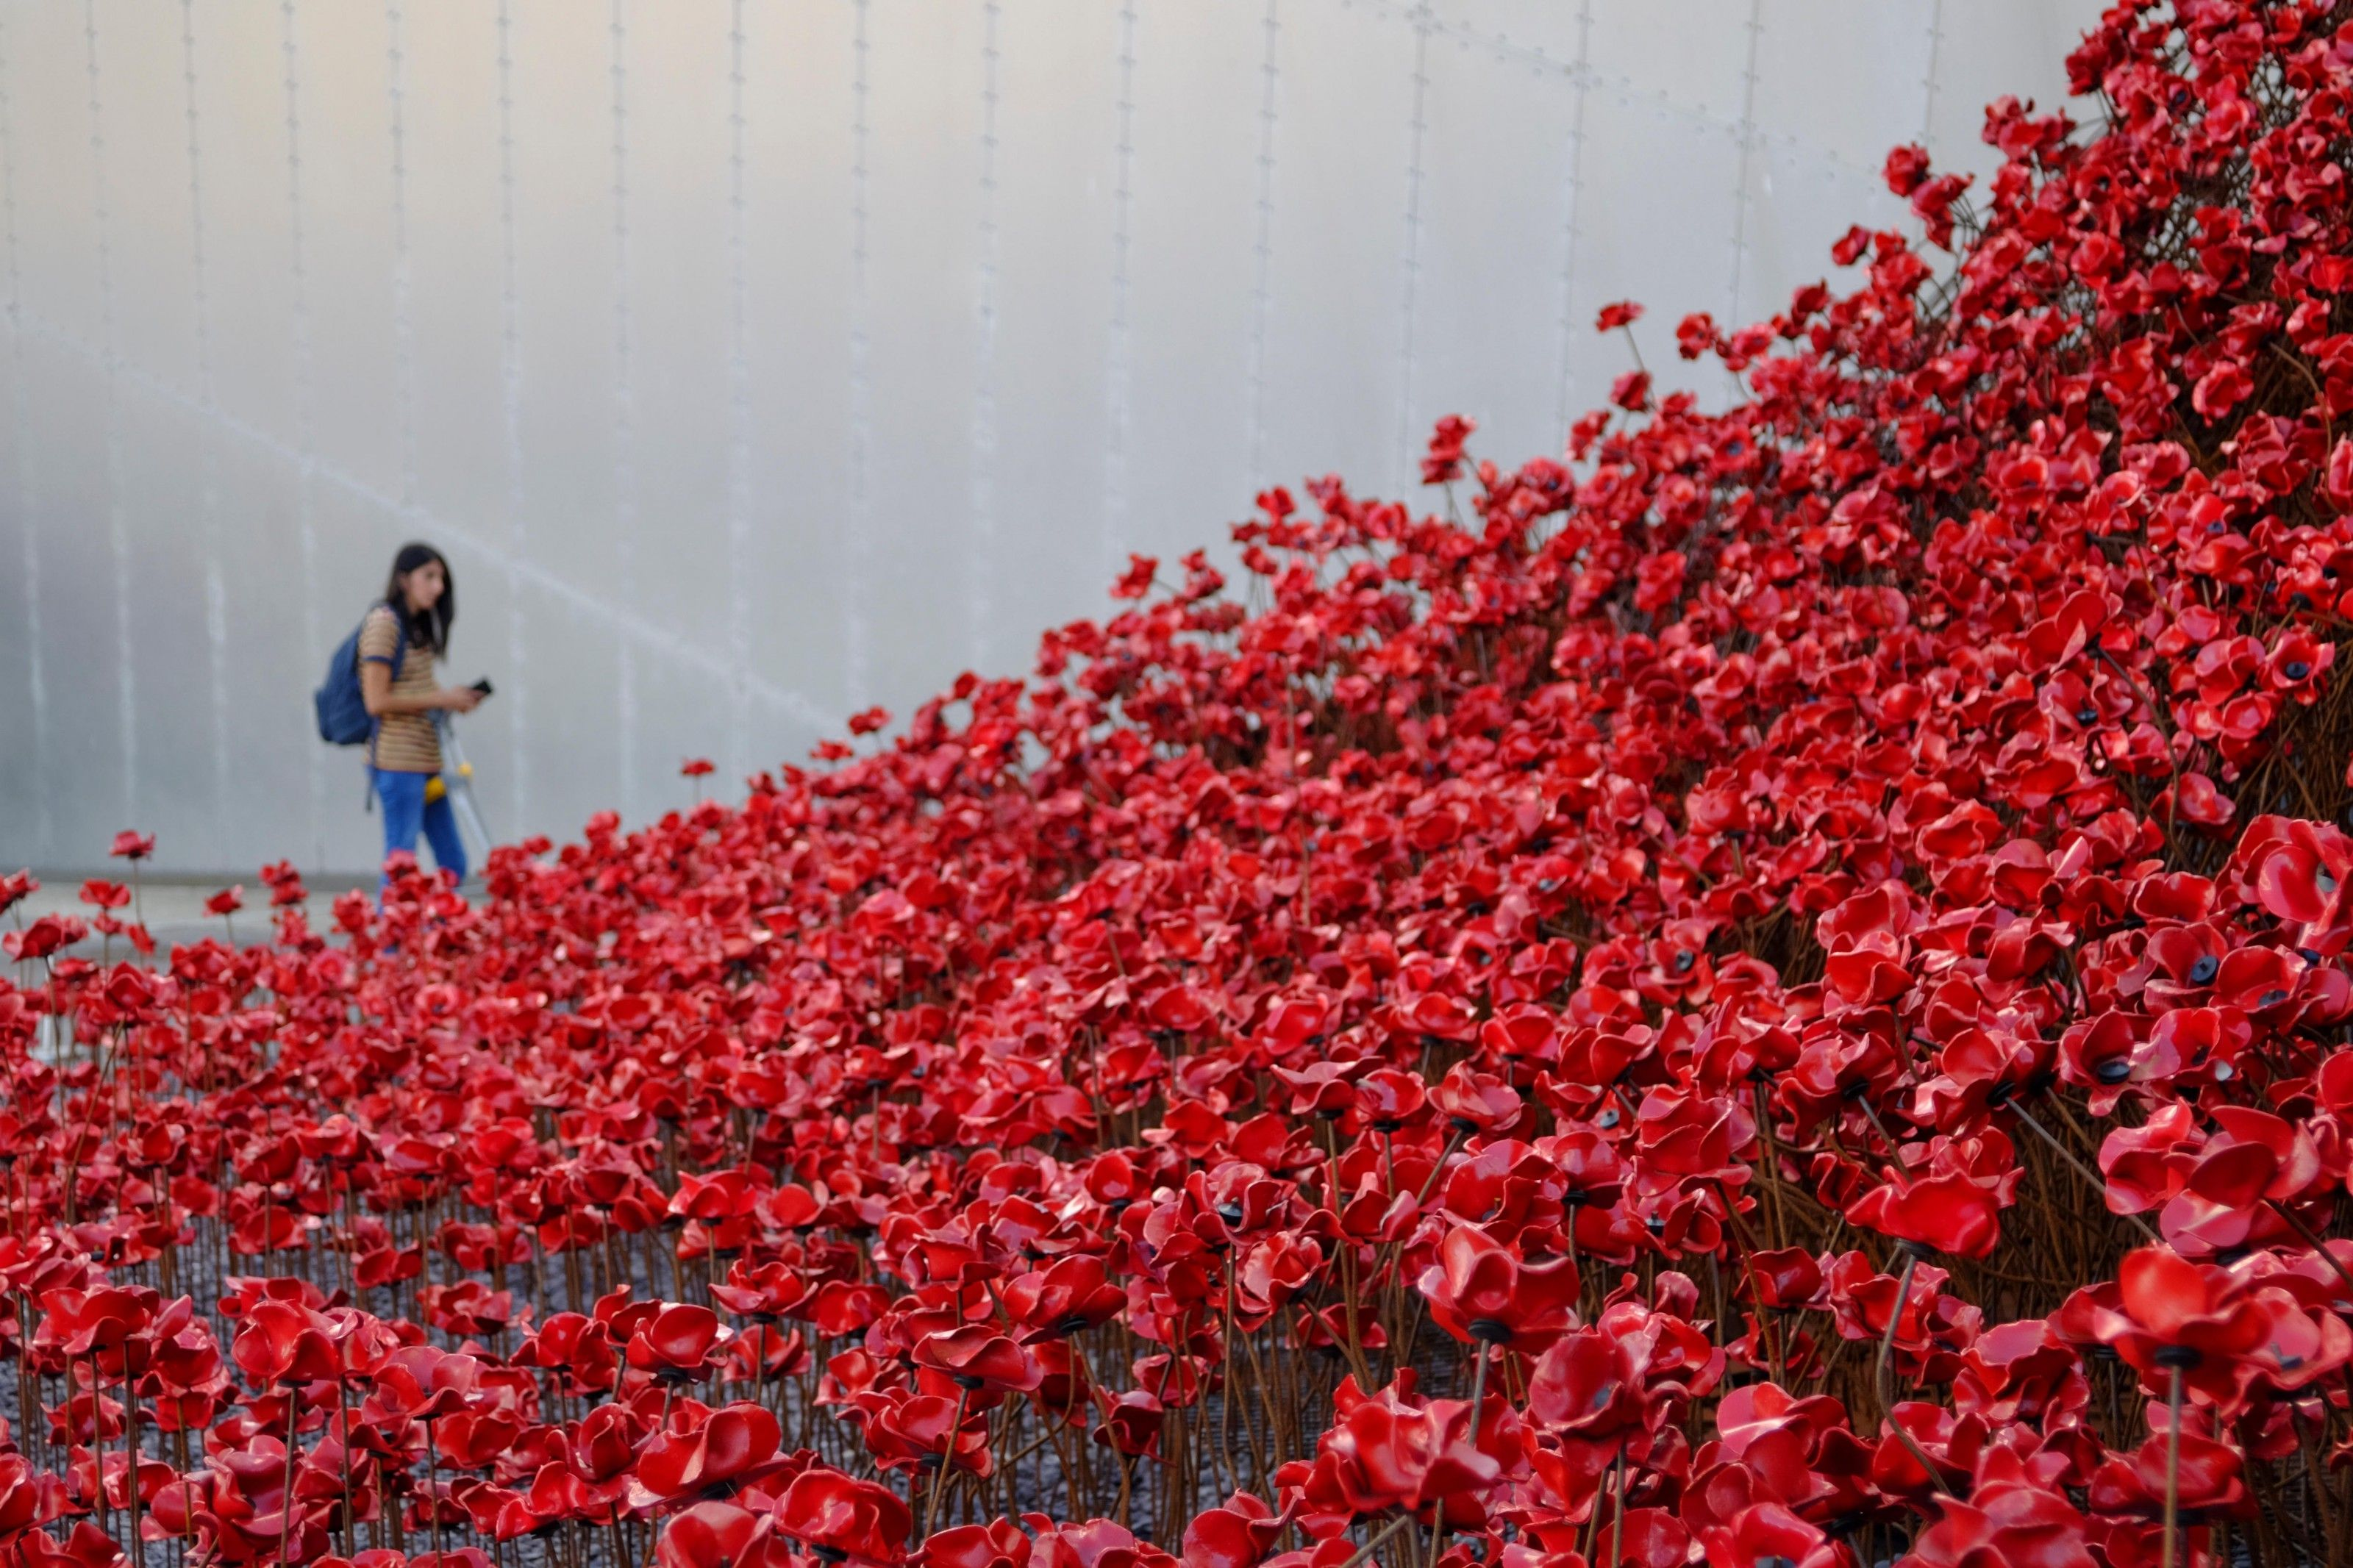 Lest We Forget: The Way Britain Chose to Remember its War Dead, and Why | National Geographic